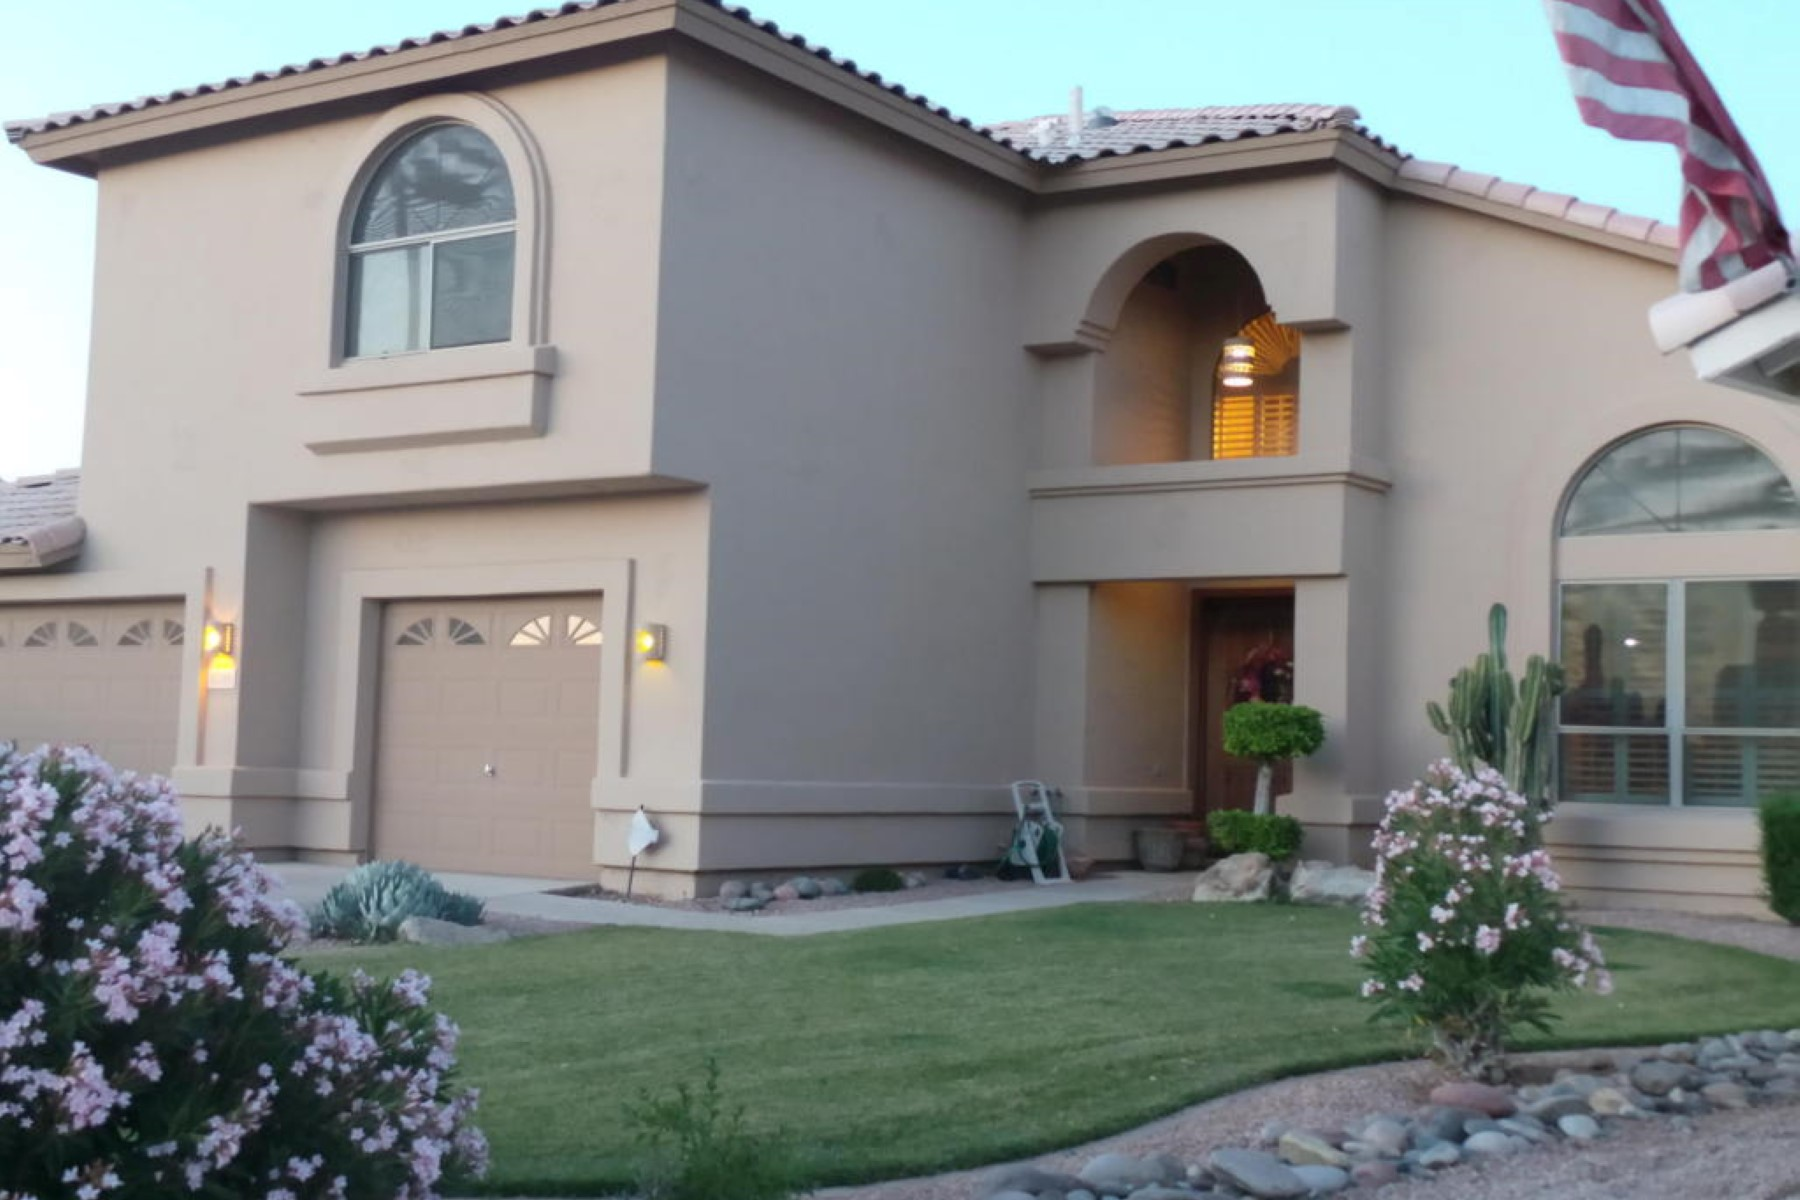 Single Family Home for Sale at Spacious Updated 5 Bedroom Home in Encantada 13745 N 93rd Way Scottsdale, Arizona, 85260 United States